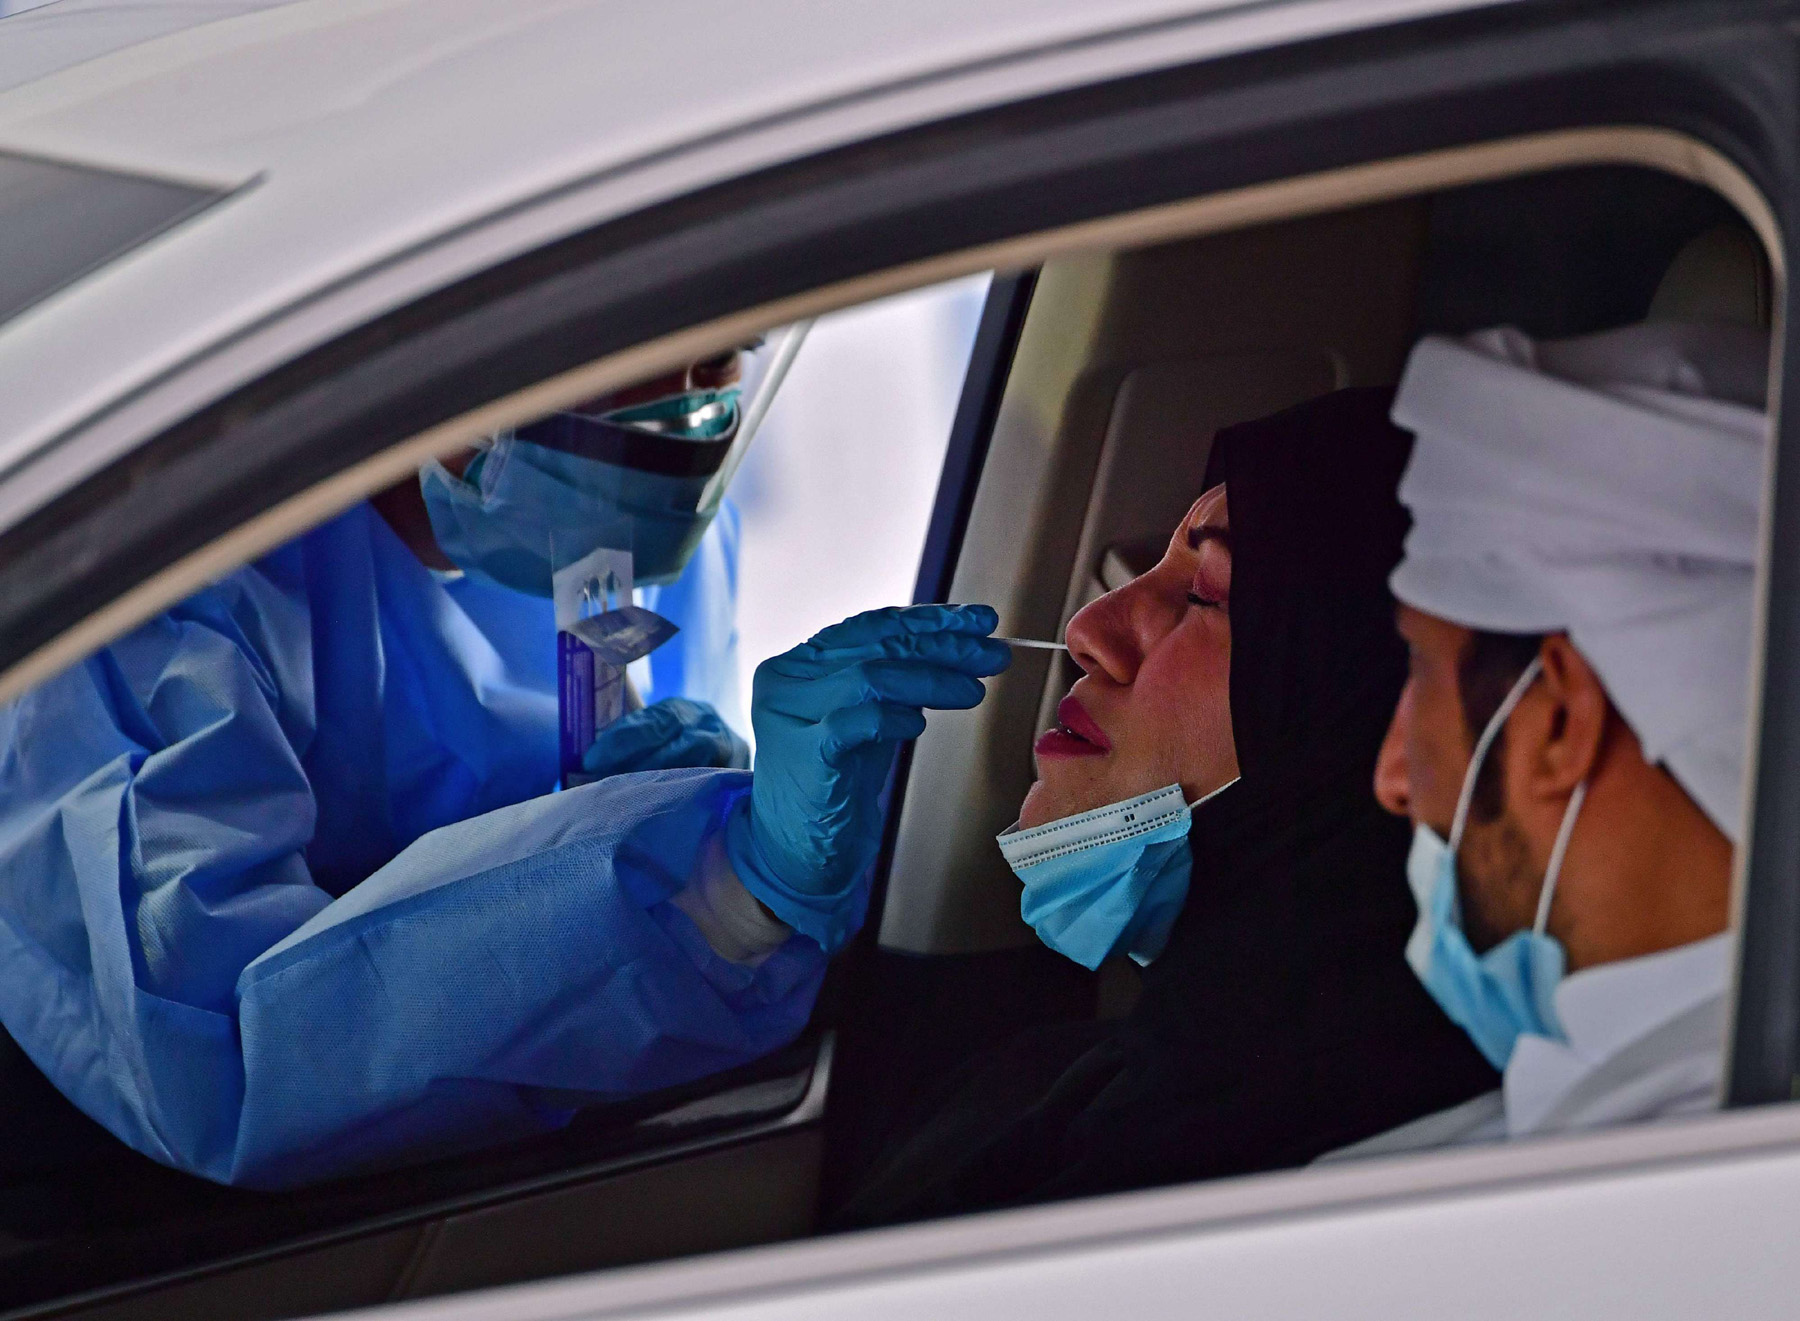 A nurse uses a swab to test the passenger of a car for COVID-19 at a drive-through verification centre in the Emirati capital Abu Dhabi, April 2. (AFP)